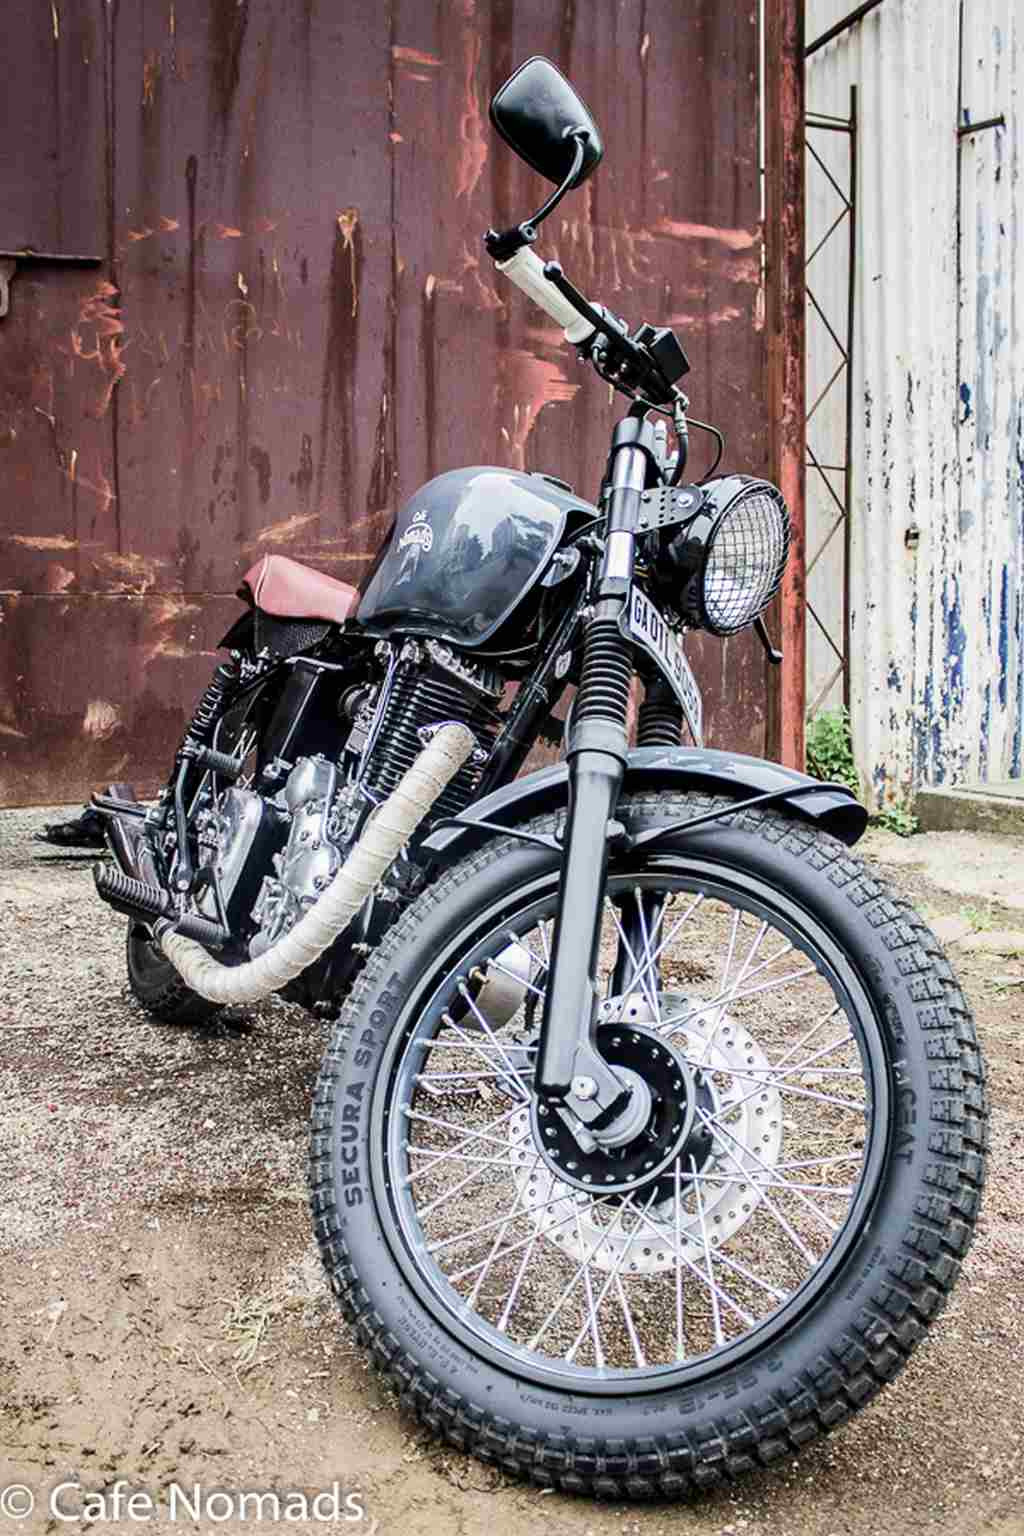 Royal Enfield Machismo Cafe Nomads